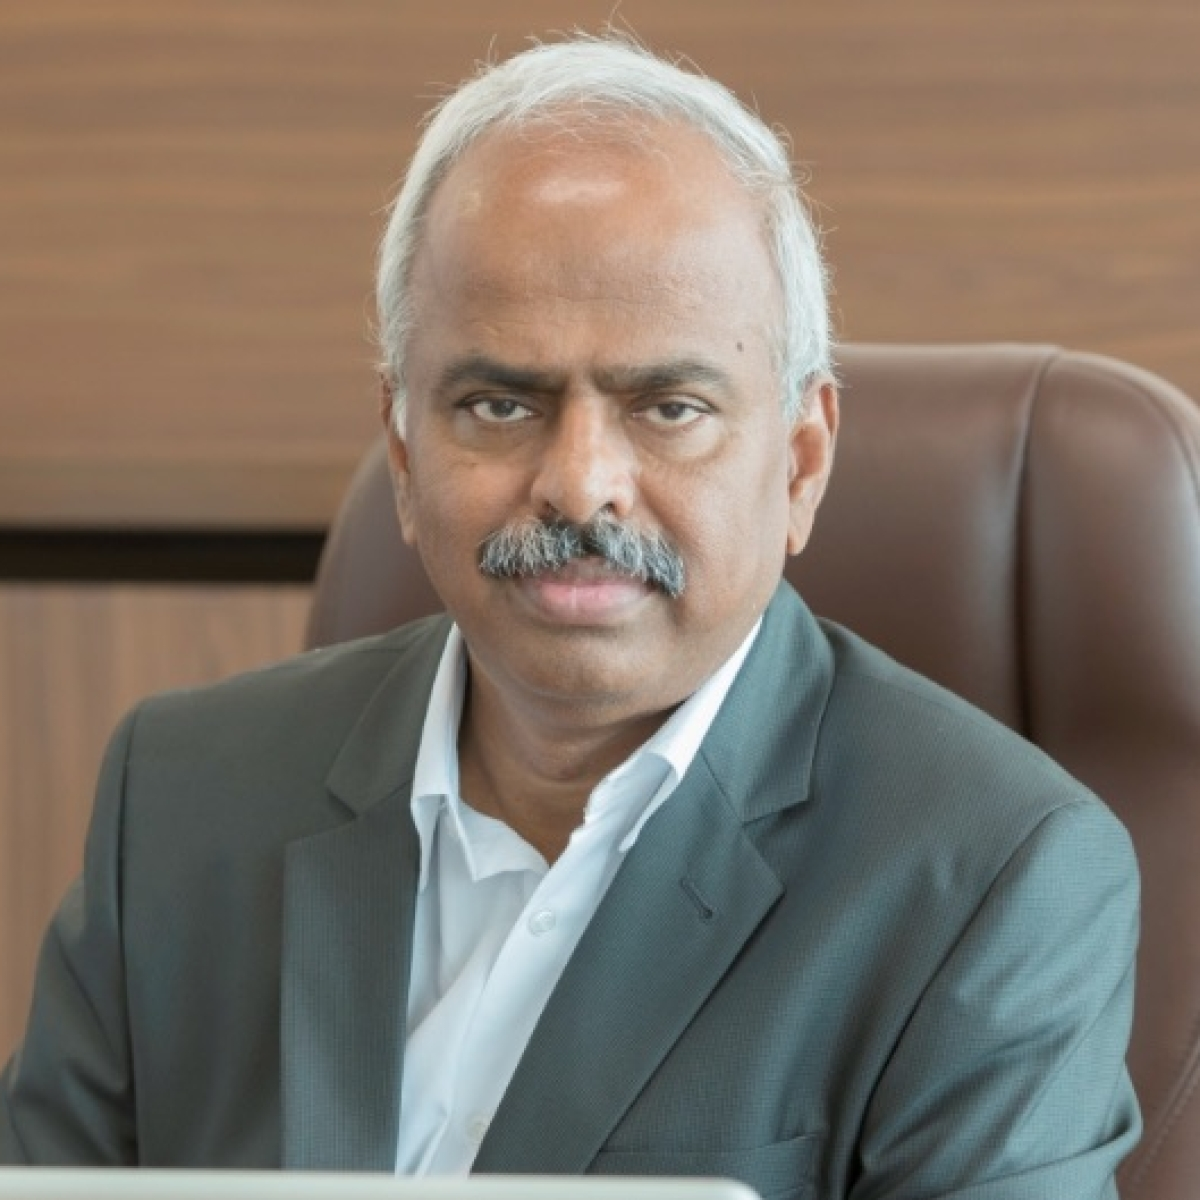 COVID-19 shaping new world order: The strong become weaker; the weaker grow stronger, says Thyrocare's Velumani